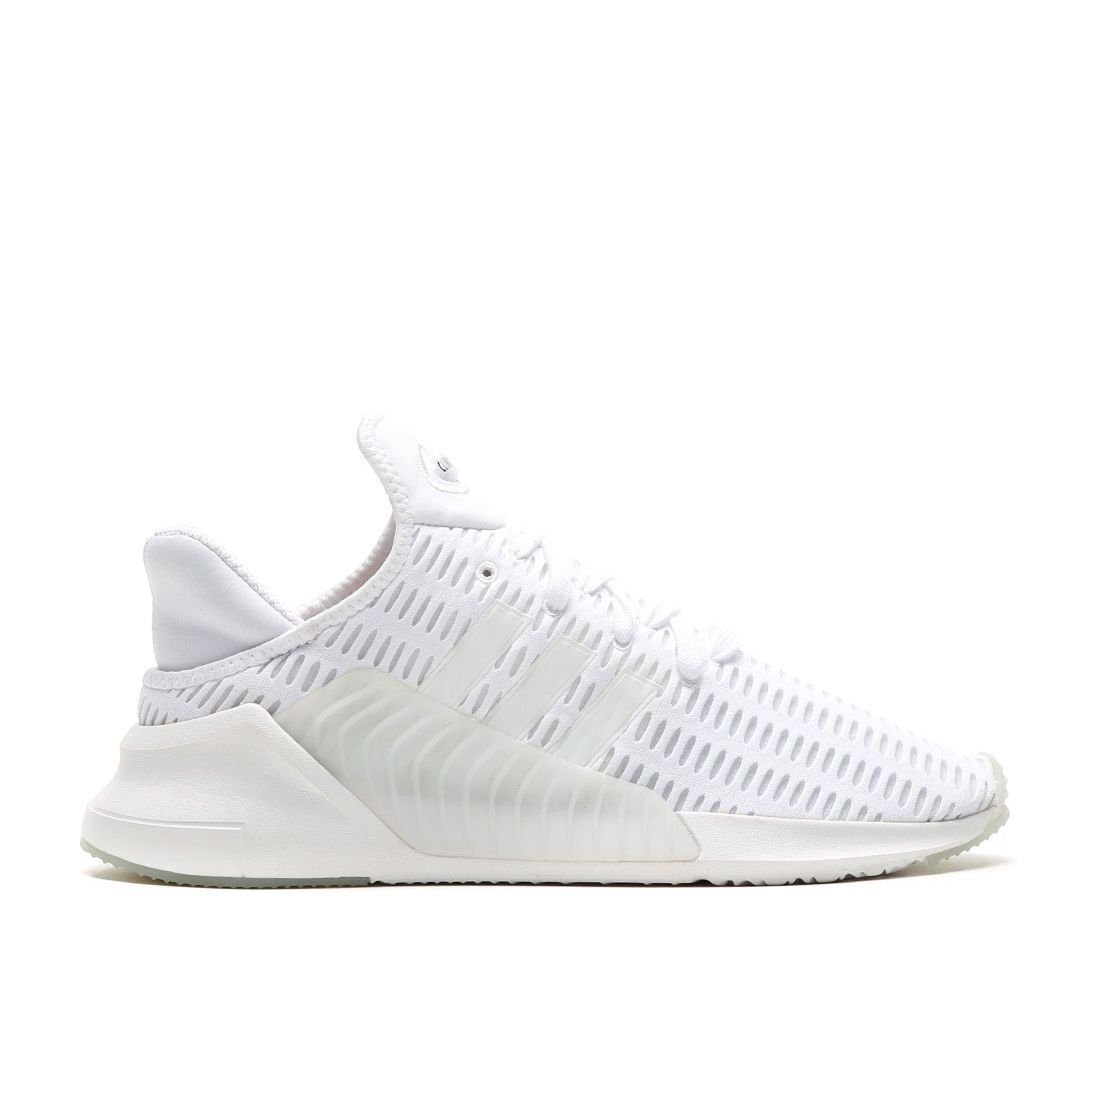 cheap for discount f675f 0b05a Adidas Men's Climacool 02 17 Style Bz0248 Wht Wht Wht 10 M ...